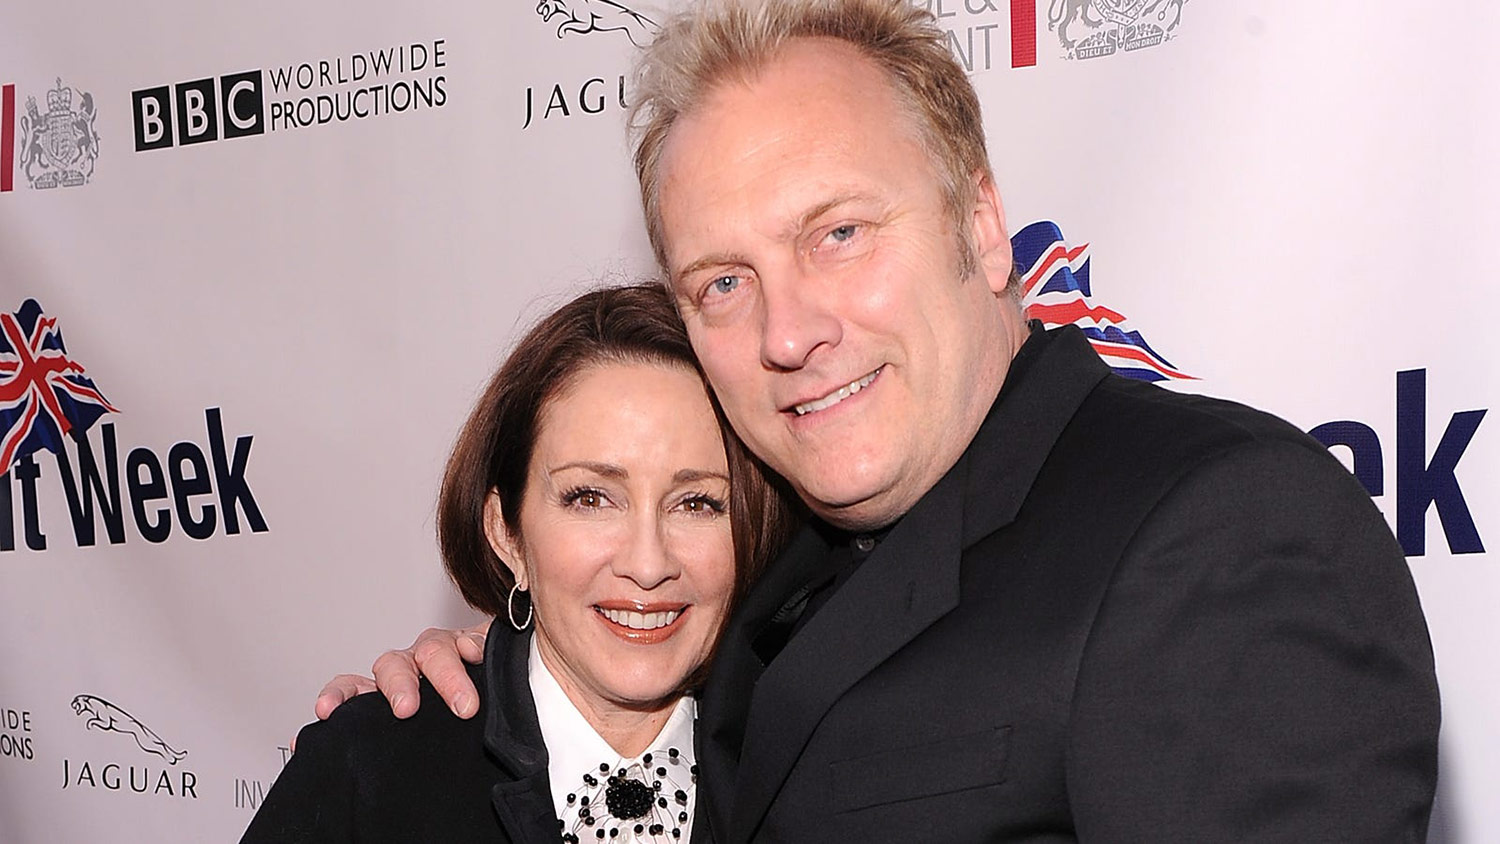 Patricia Heaton and husband David Hunt arrive at BritWeek's VIP launch reception of the 5th annual BritWeek at the British Consul General's residence on April 26, 2011 in Los Angeles, California. Frazer Harrison, Getty Images